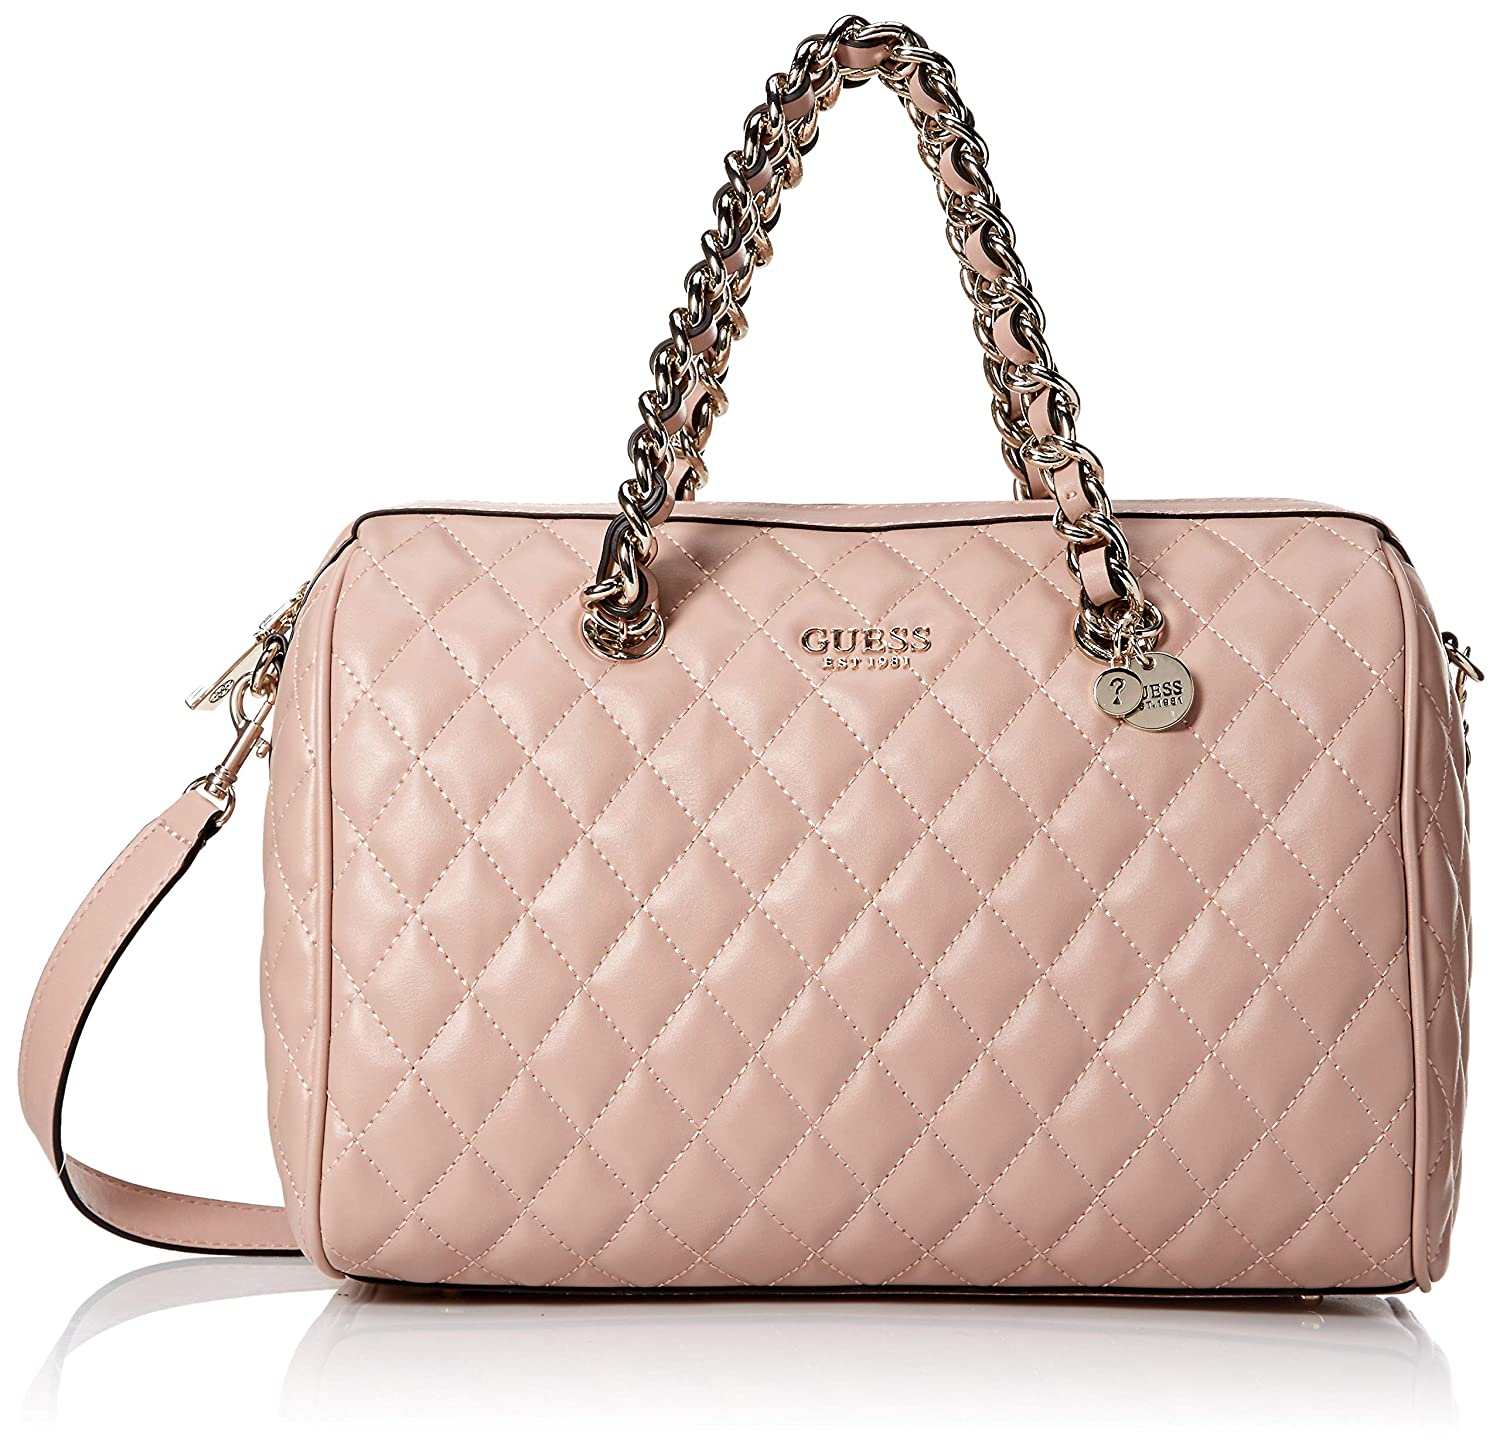 Guess BAULETTO DONNA ROSA SWEET CANDY LARGE SATCHEL: Amazon